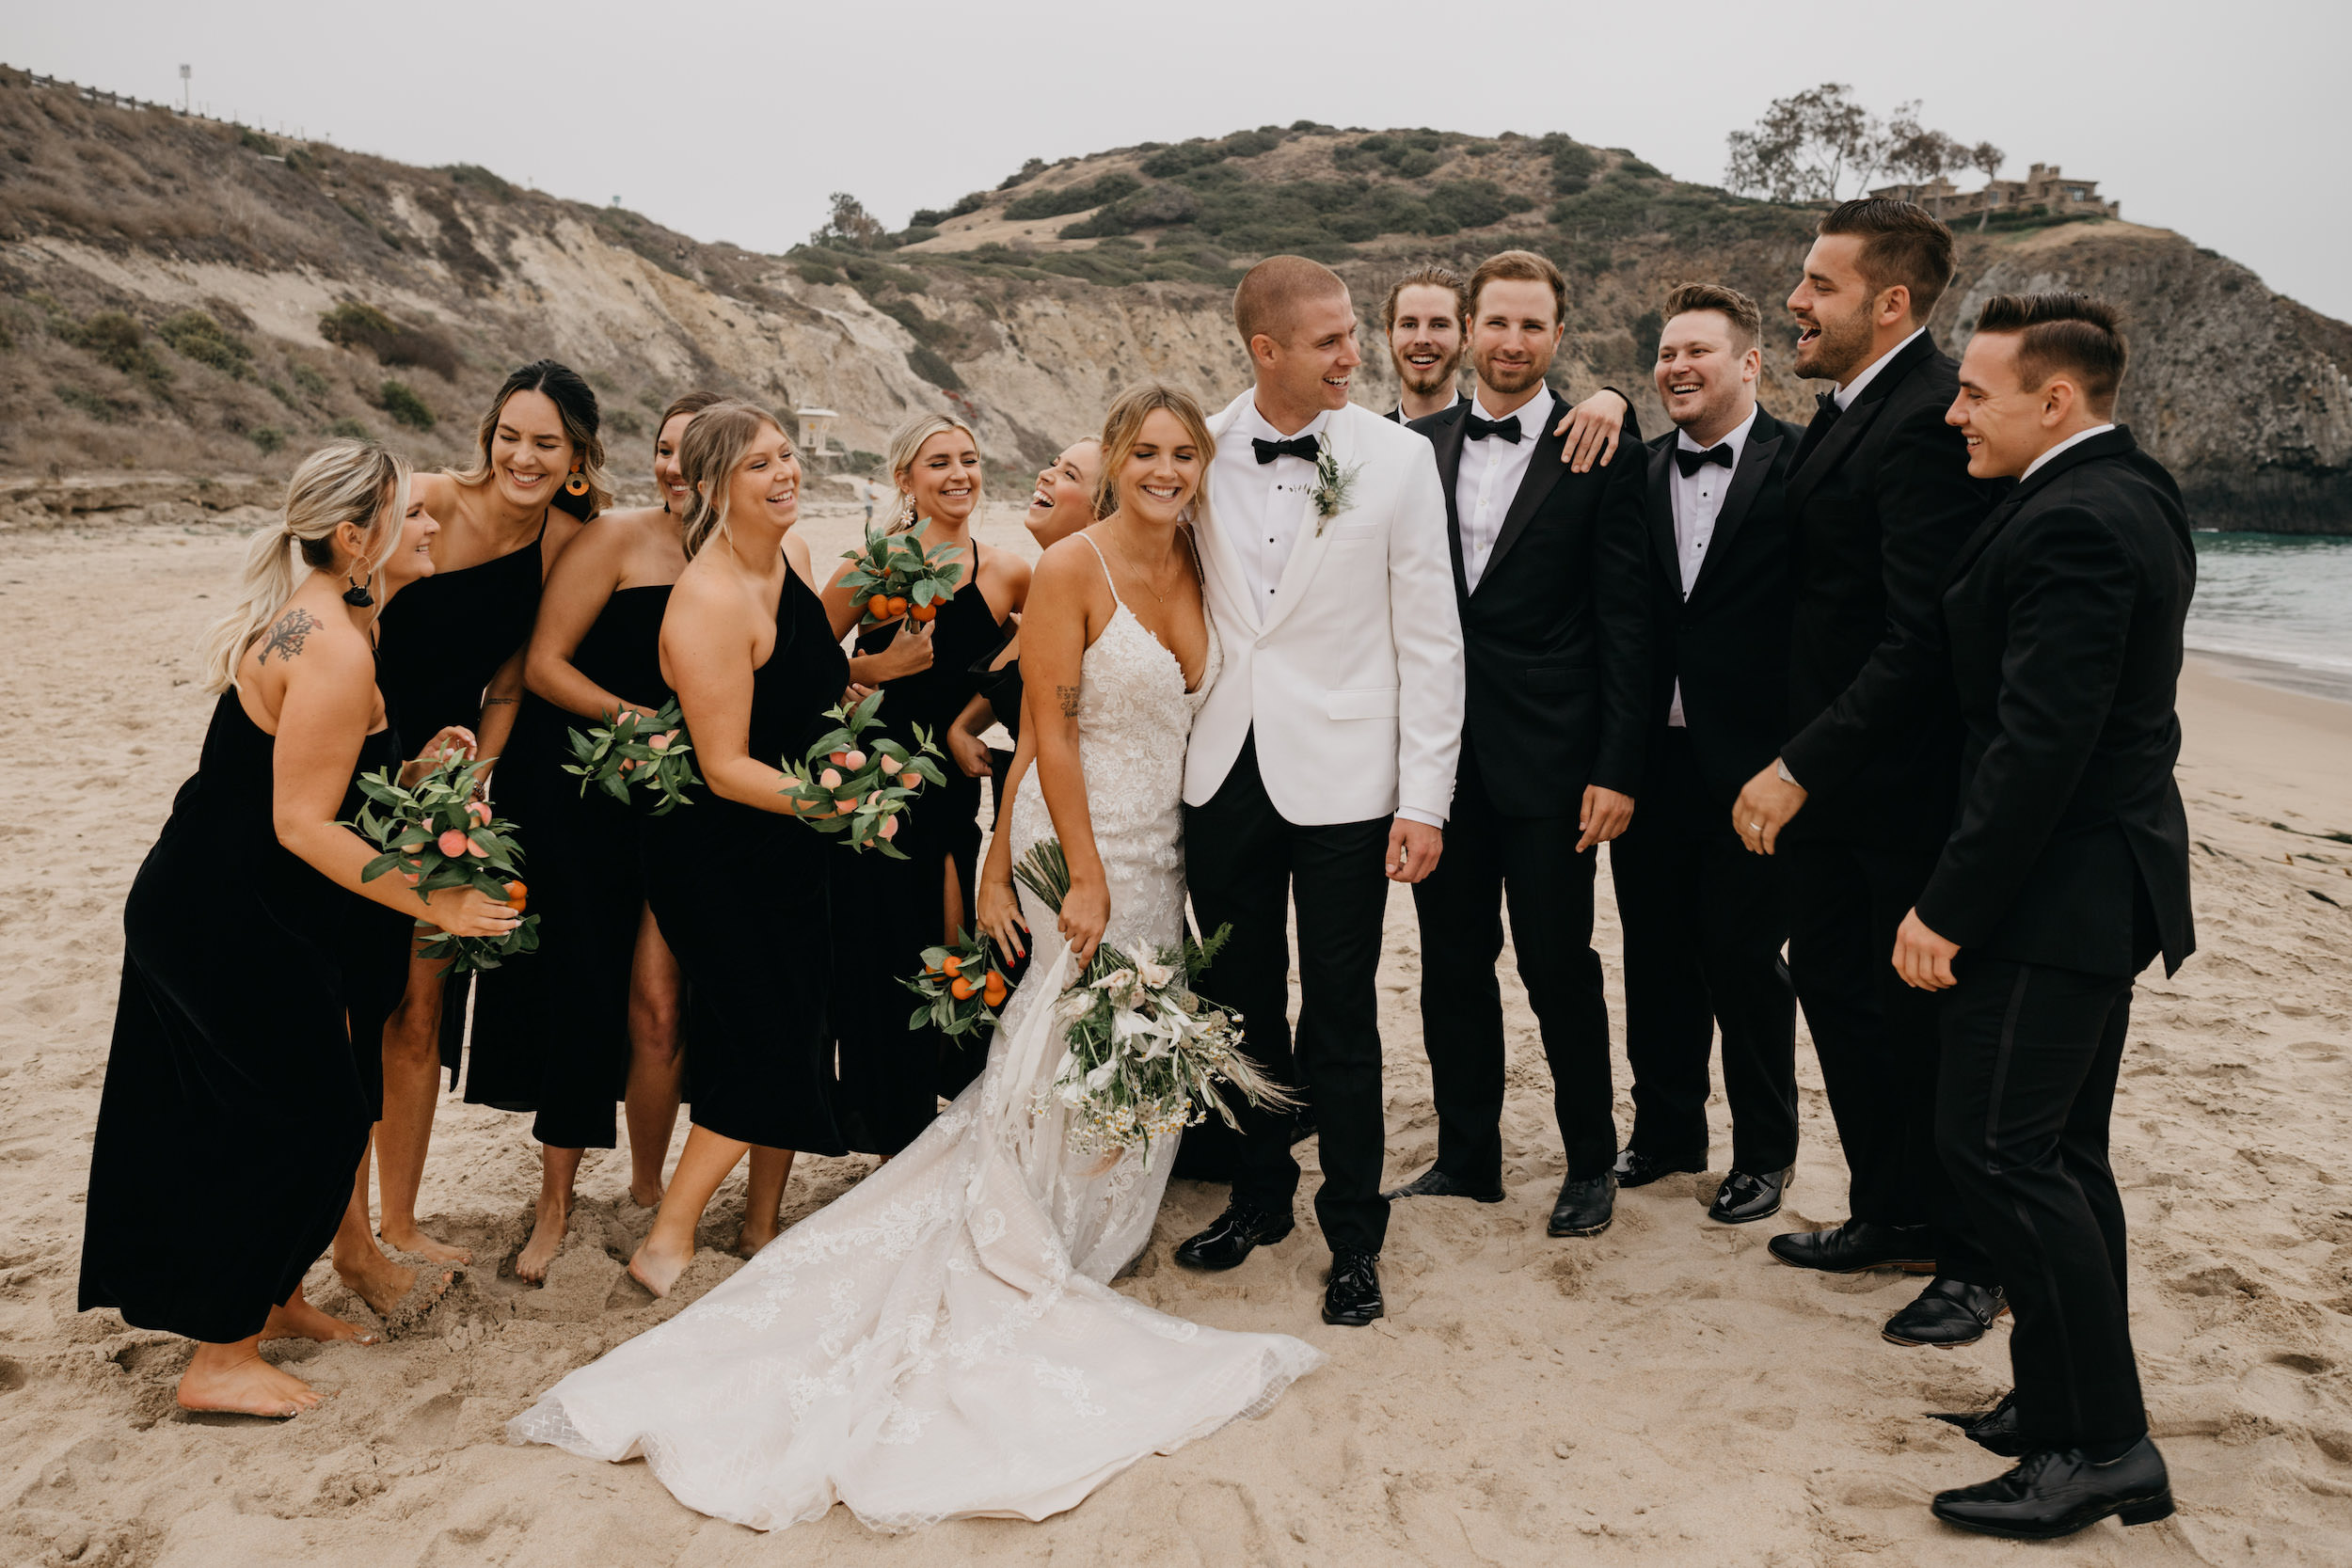 Bridal Party Photos in Crystal Cove State Park Wedding in Laguna Beach, image by Fatima Elreda Photo